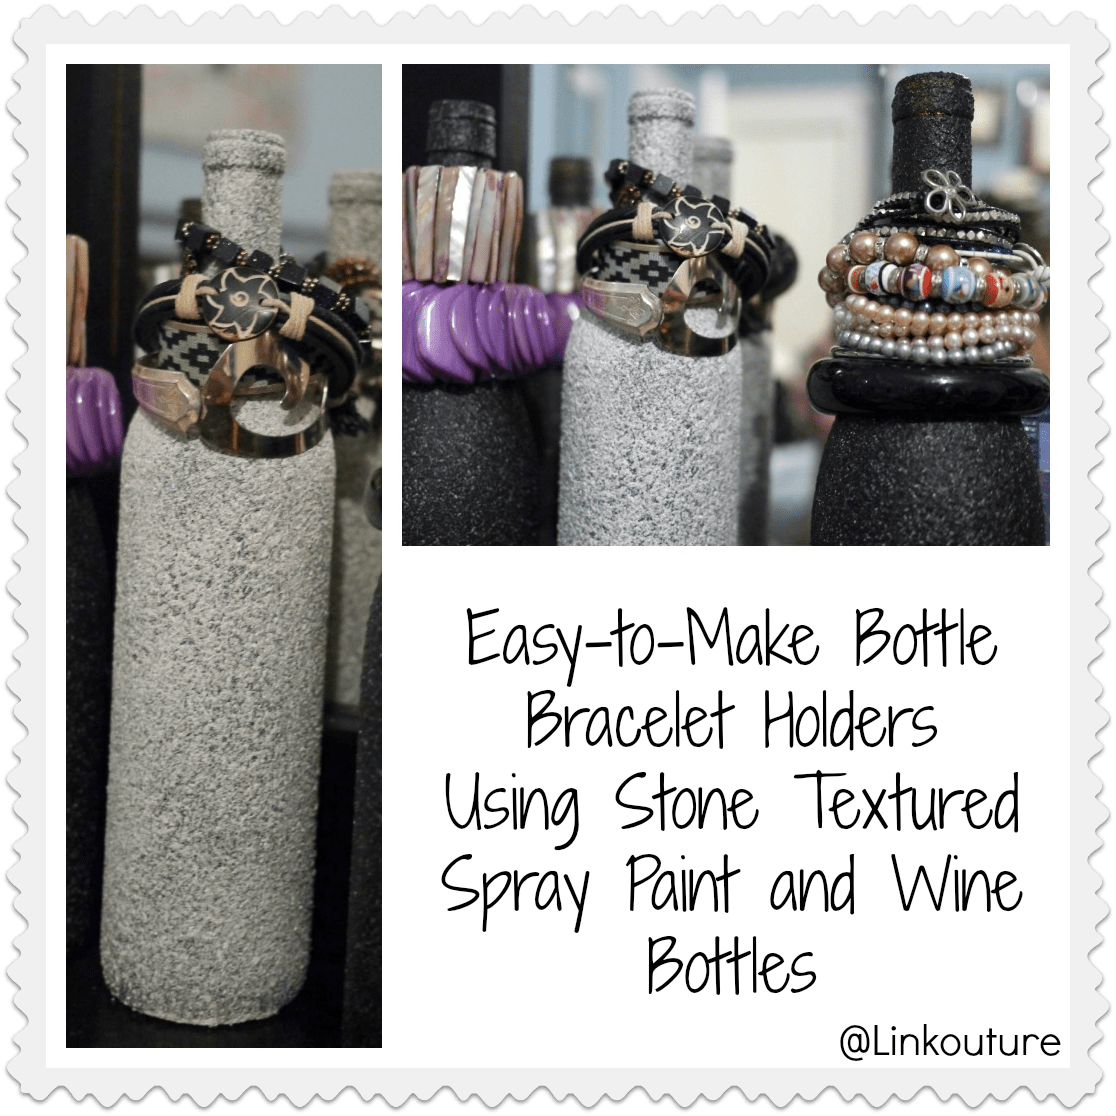 Fun with Stone Textured Spray Paint Part 1 Bottle Bracelet Holders